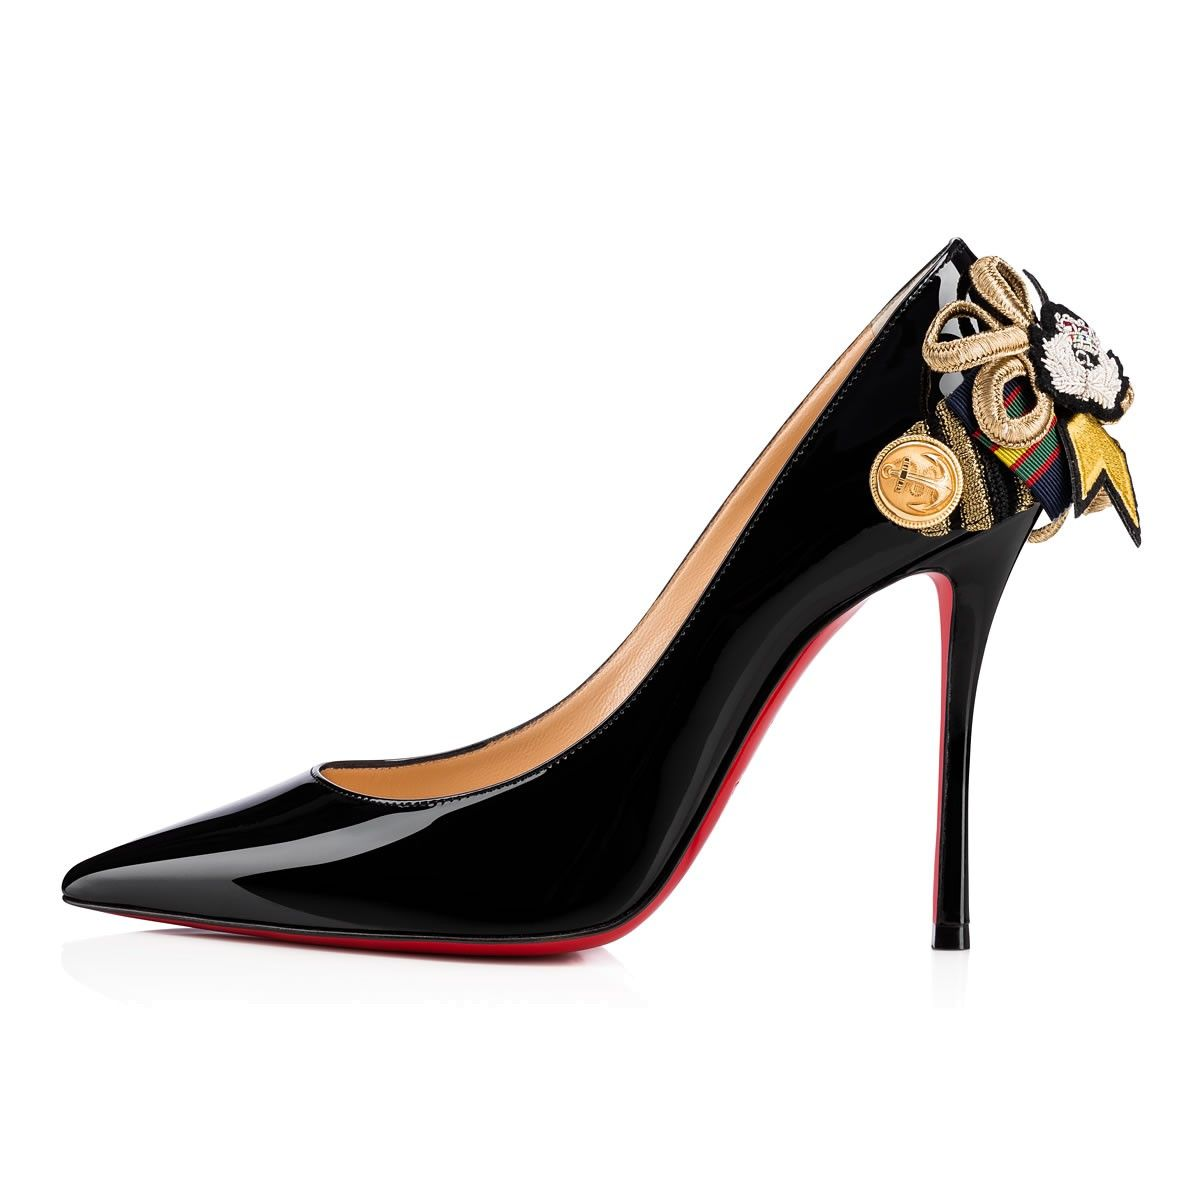 louboutin chaussures noires